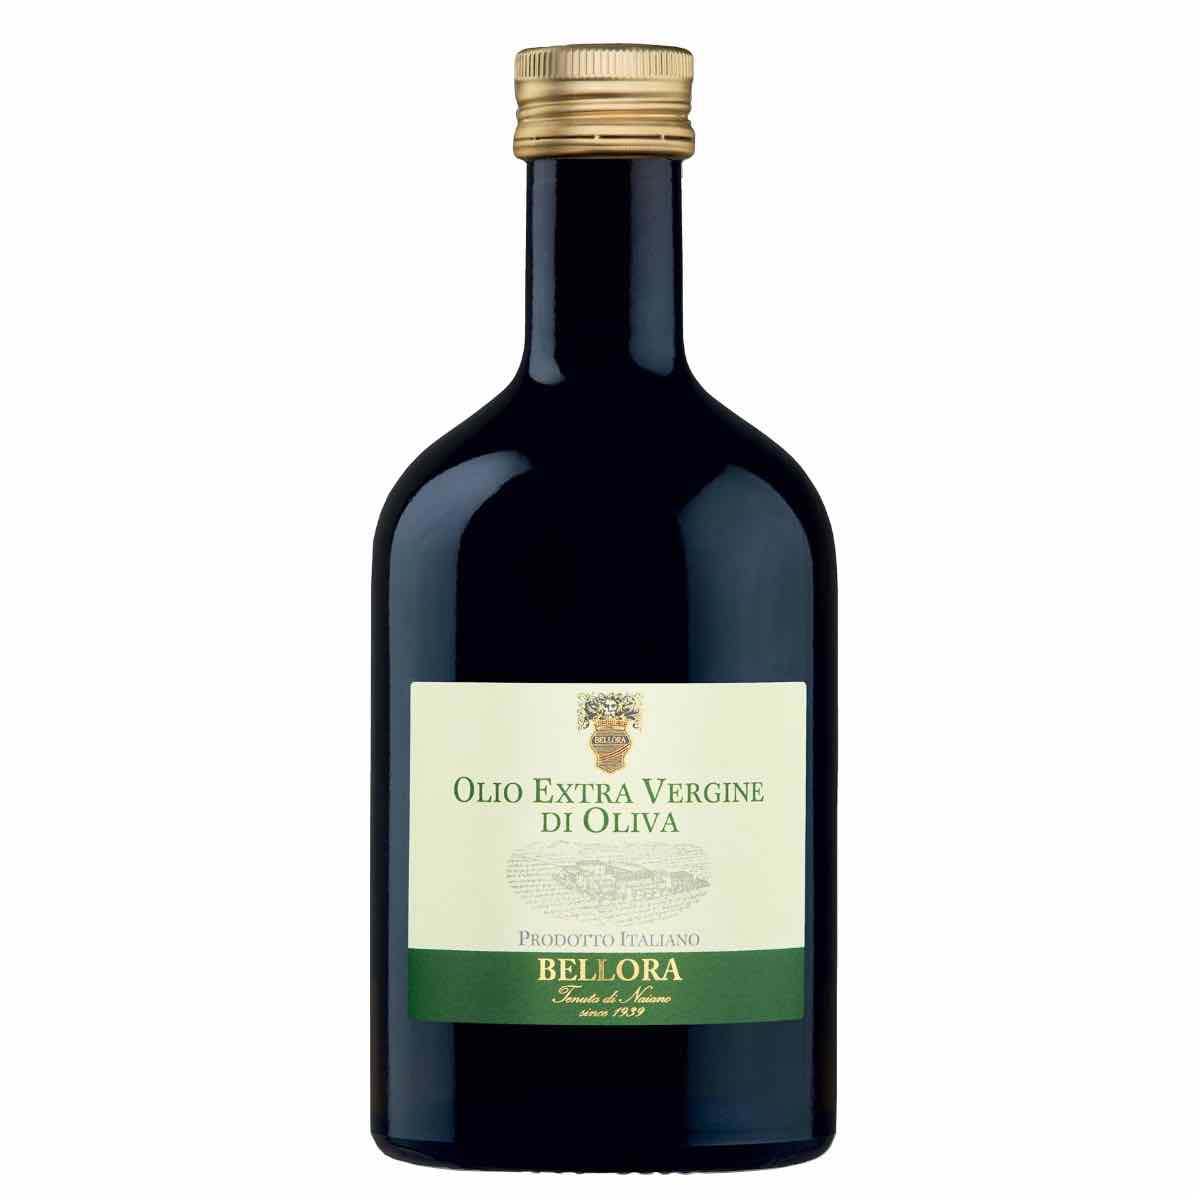 Bellora extra virgin olive oil – best Italian food – Gustorotondo online food shop – authentic Italian artisan food